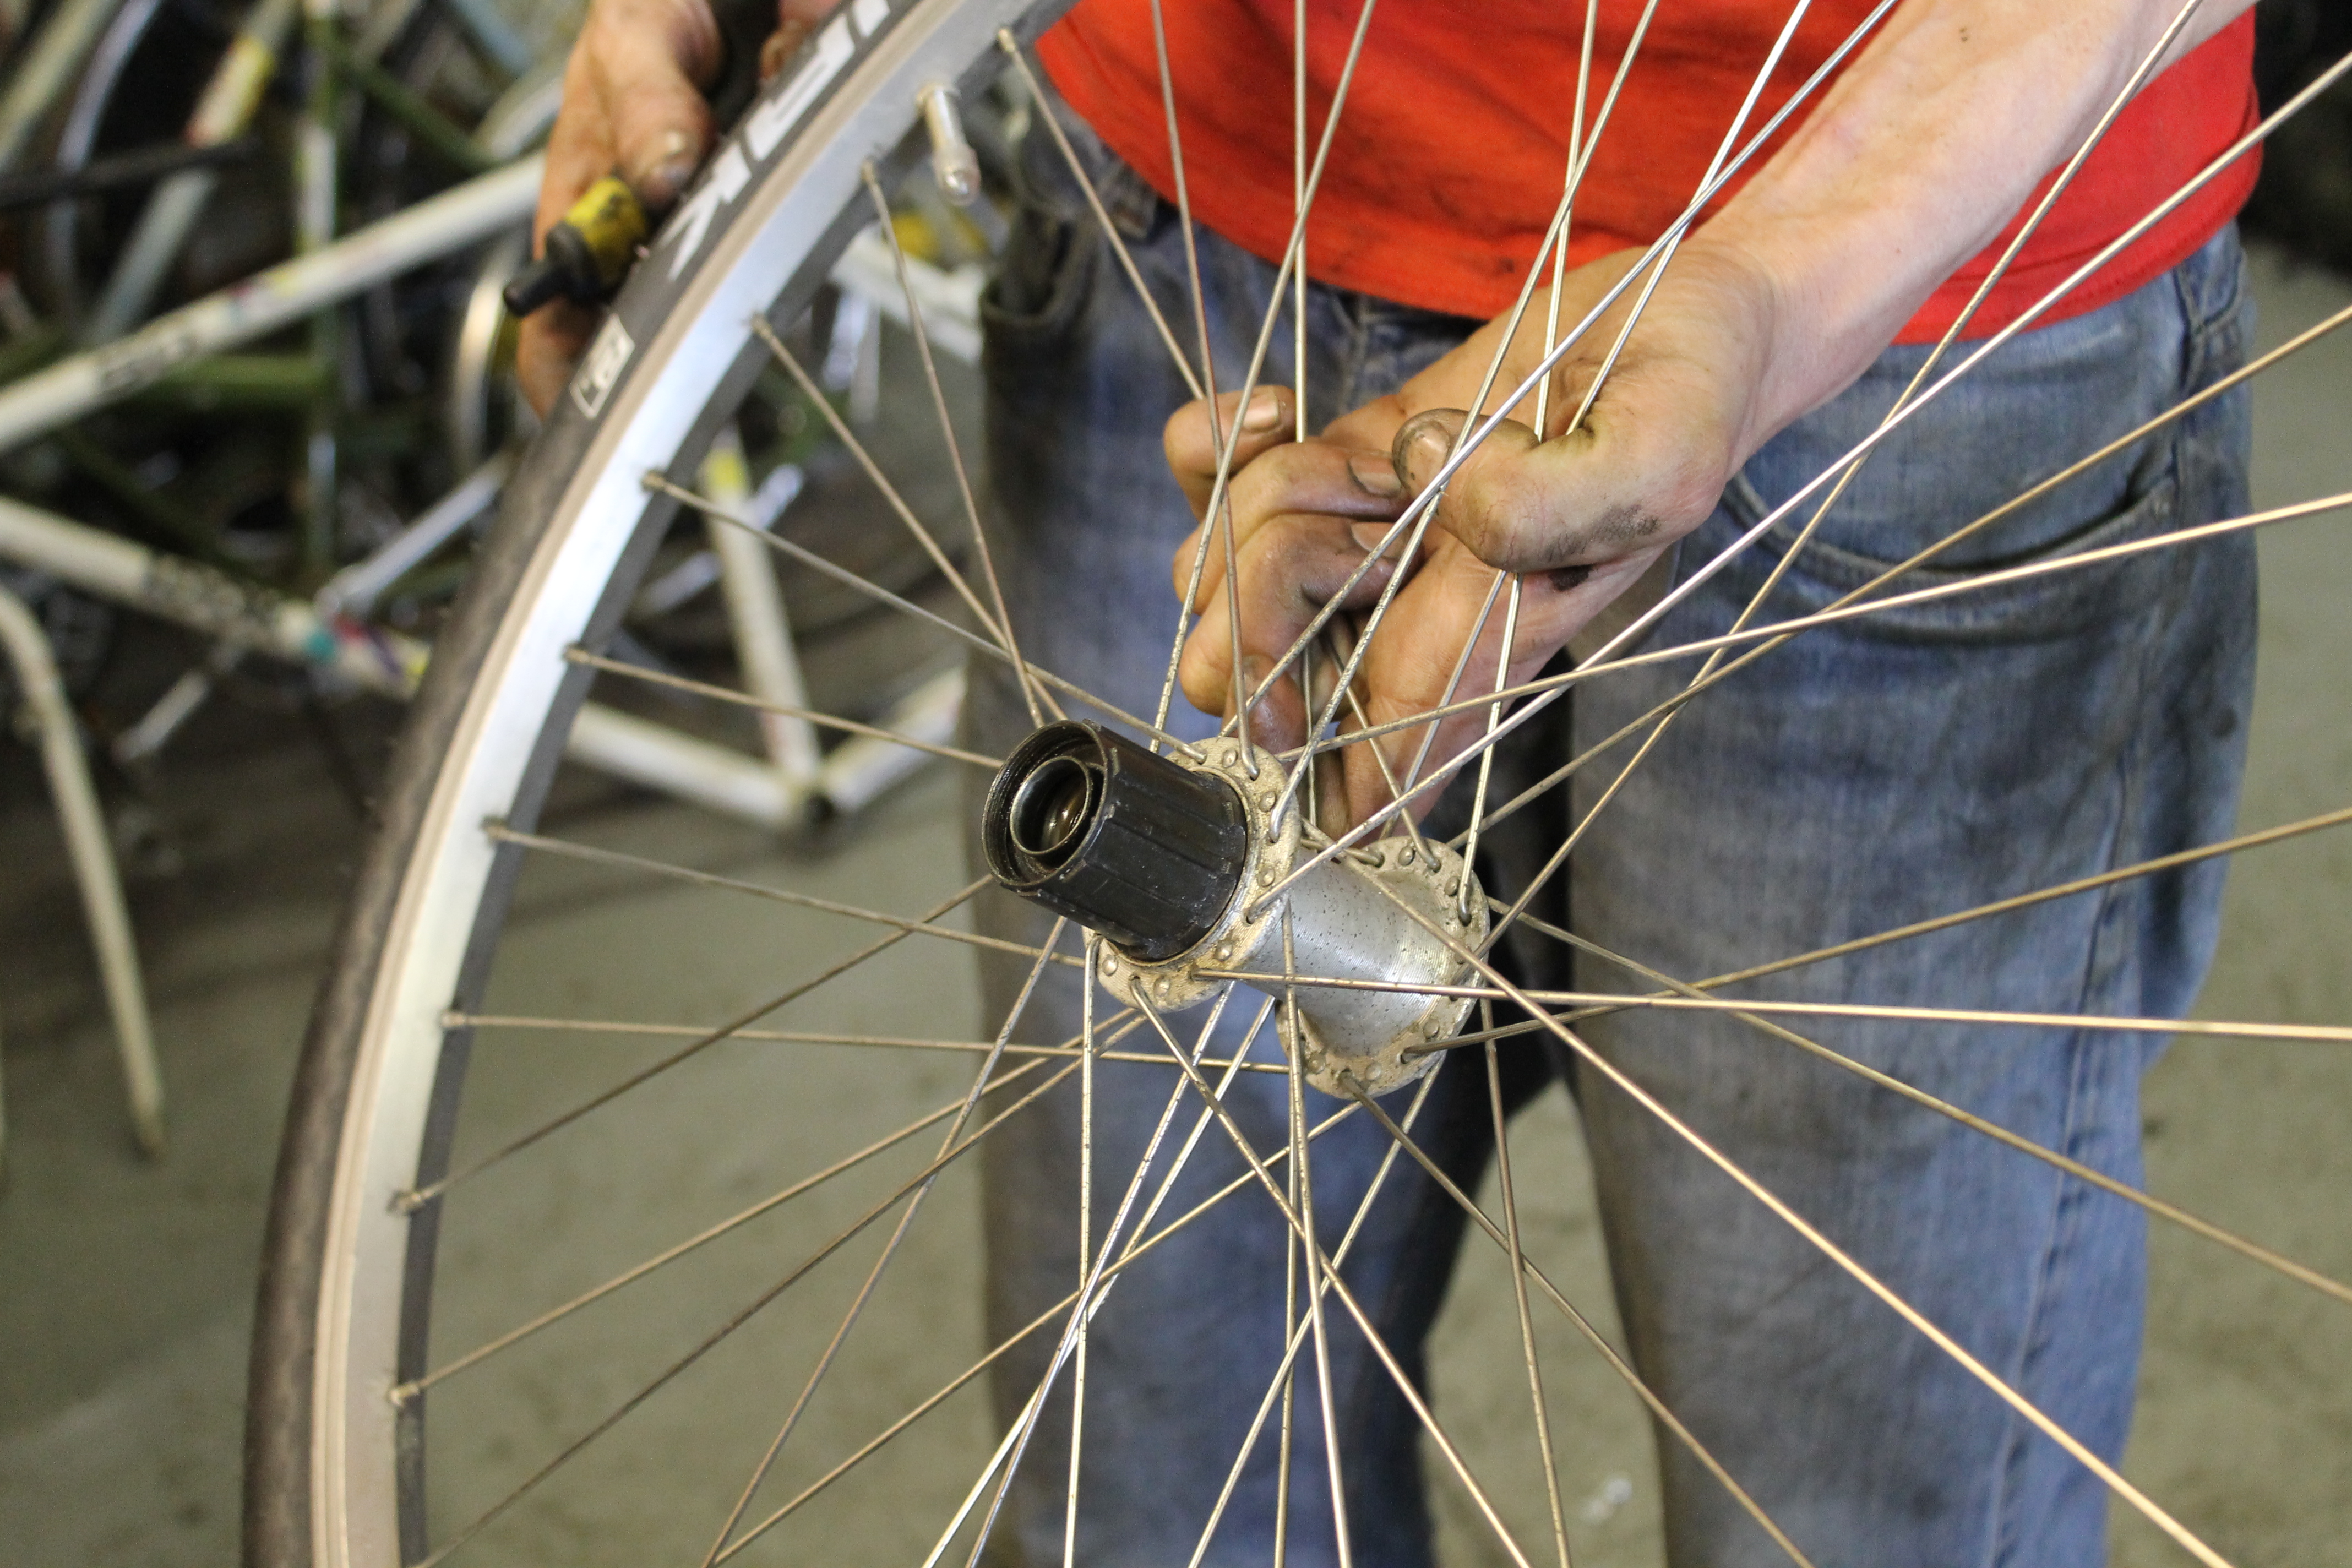 Replacing a Freehub Body on a Rear Bicycle Wheel.